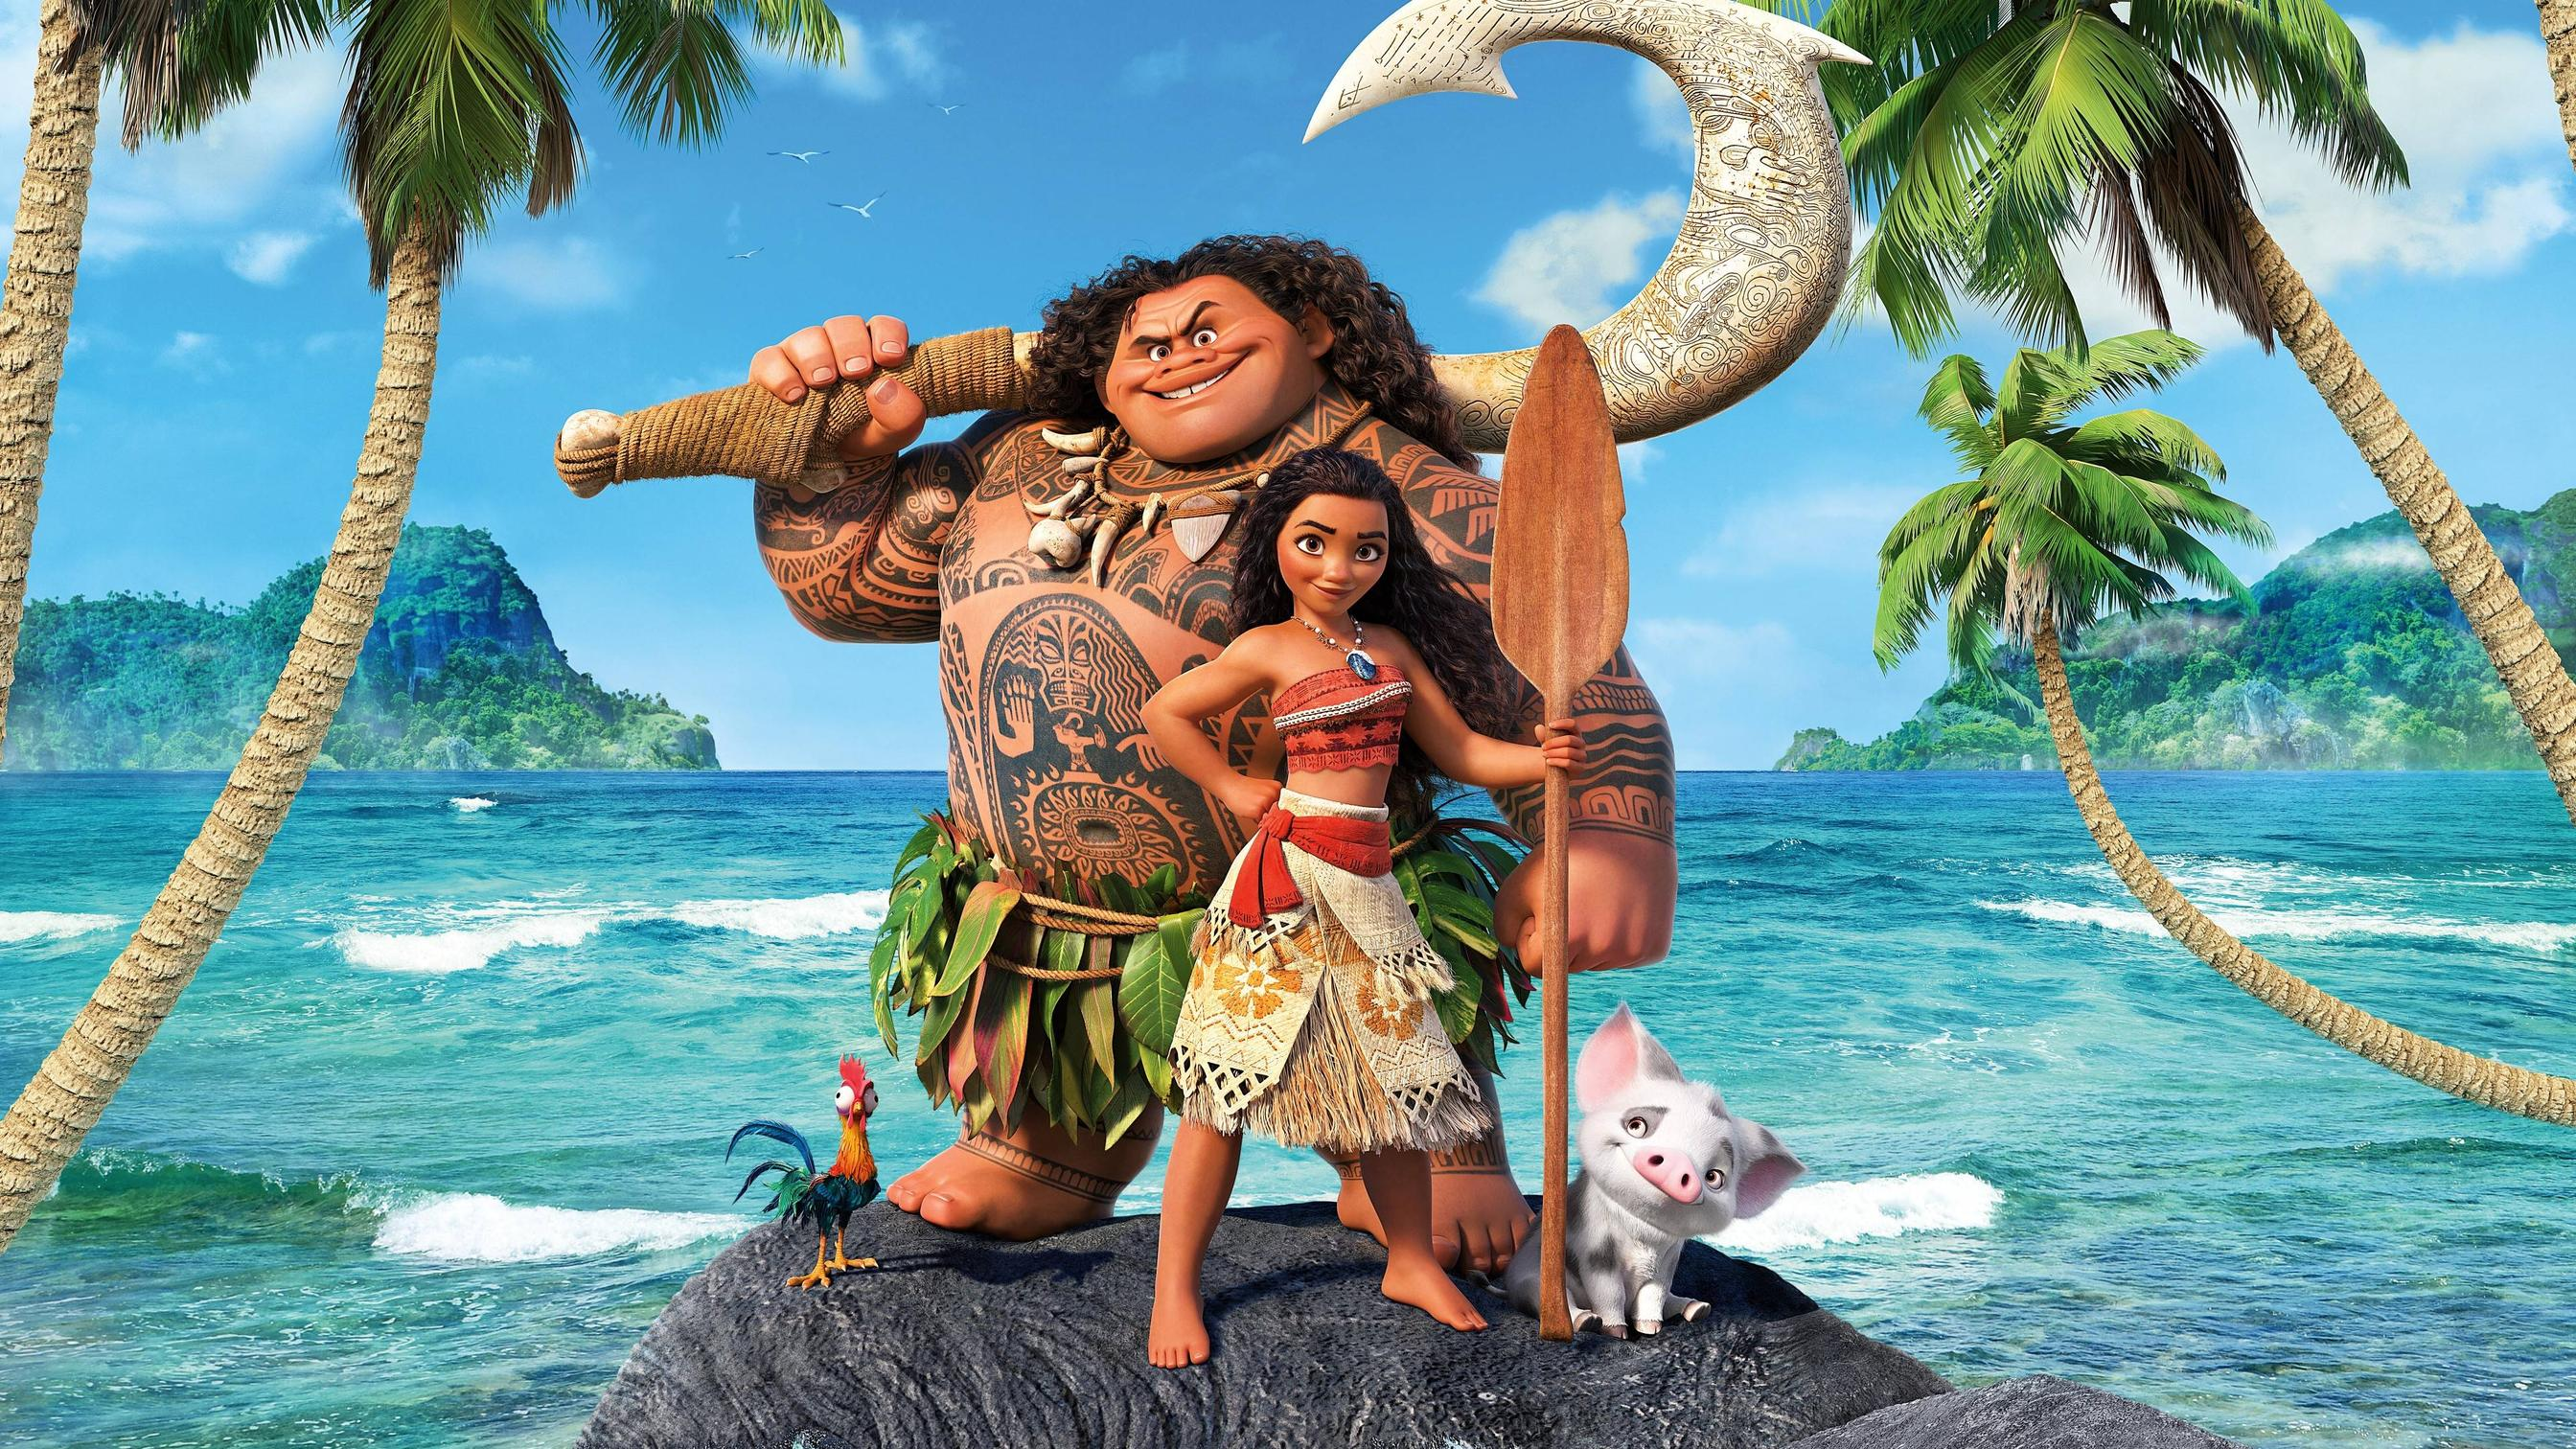 Moana 2016 Disney Movie 4k Hd Movies 4k Wallpapers Images